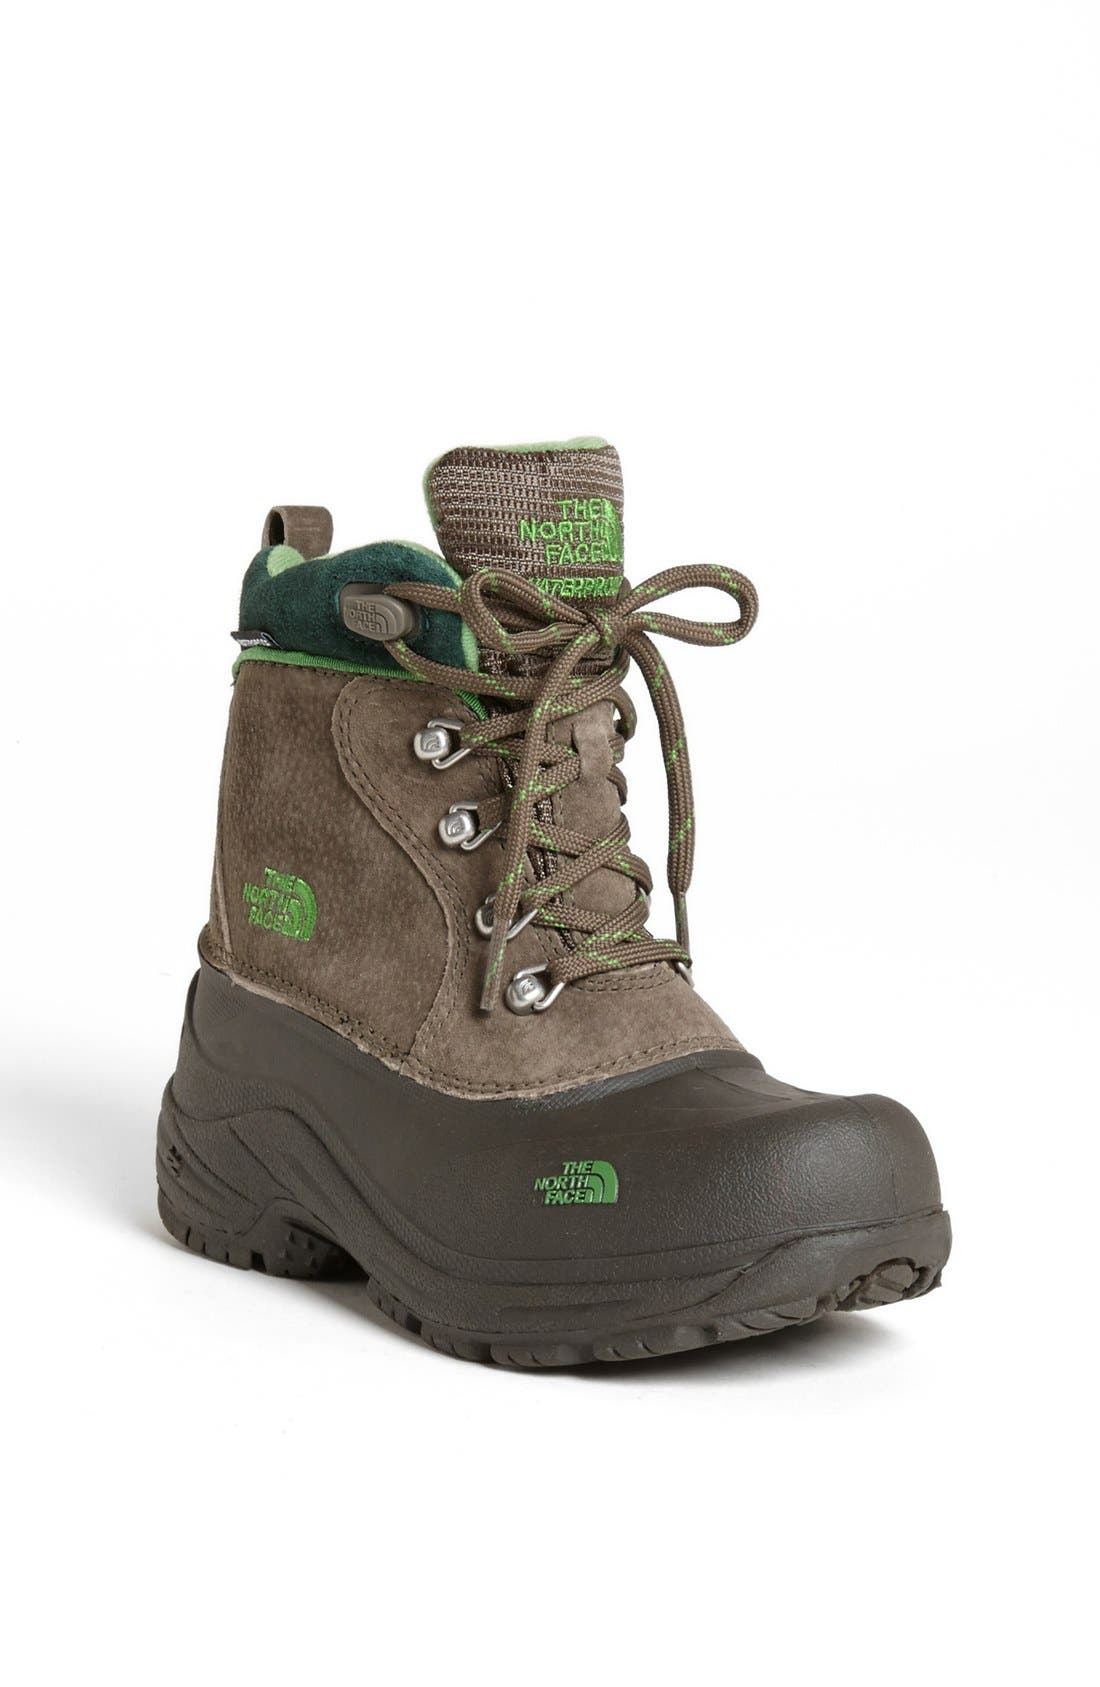 Alternate Image 1 Selected - The North Face 'Chilkats' Lace Up Waterproof Snow Boot (Toddler, Little Kid & Big Kid)